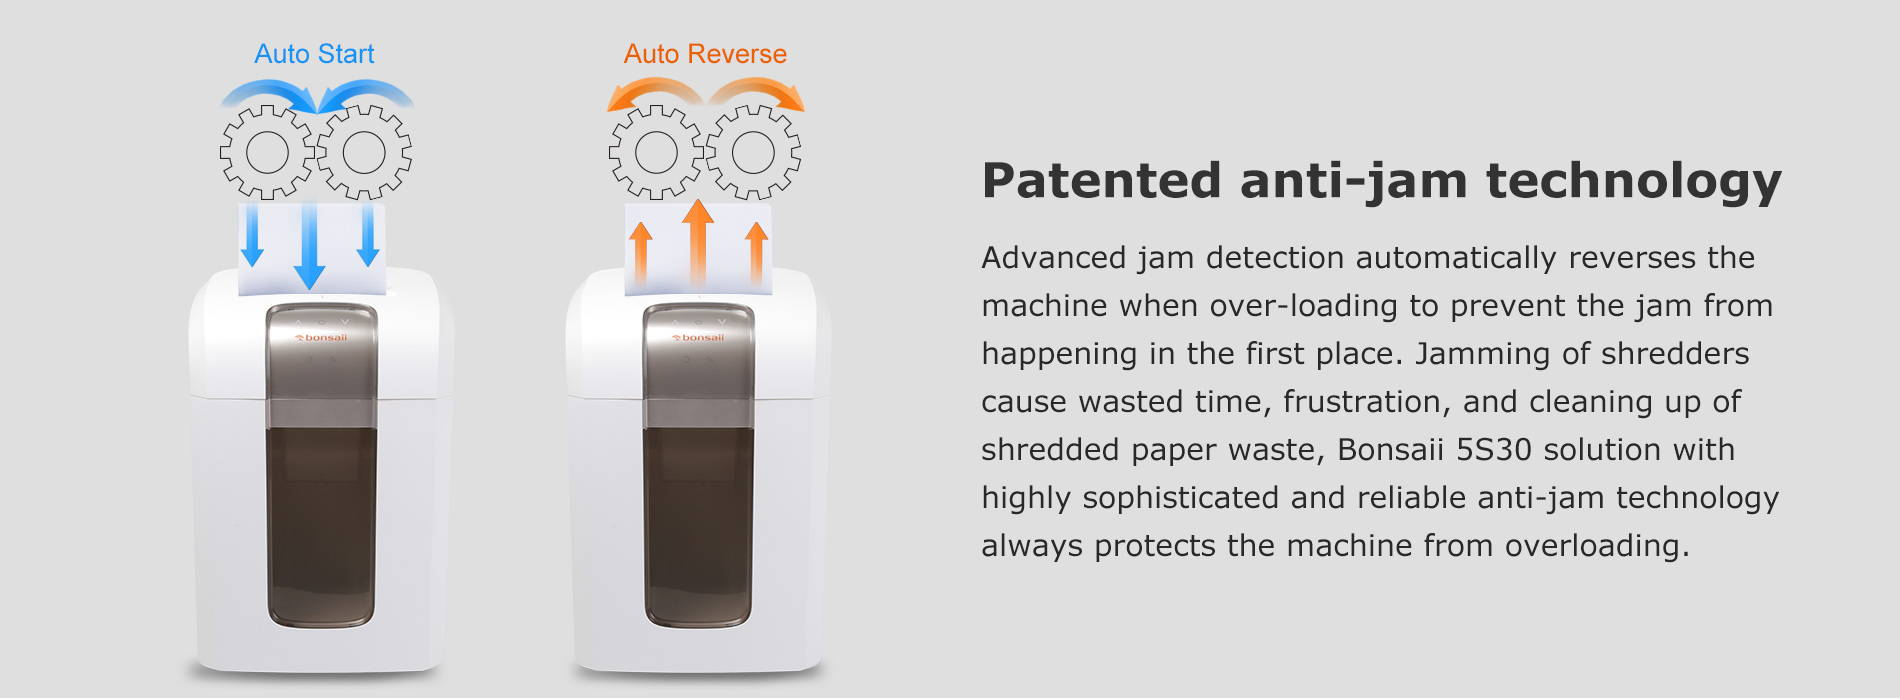 Patented anti-jam technology Advanced jam detection automatically reverses the machine when over-loading to prevent the jam from happening in the first place. Jamming of shredders cause wasted time, frustration, and cleaning up of shredded paper waste, Bonsaii 5S30 solution with highly sophisticated and reliable anti-jam technology always protects the machine from overloading.